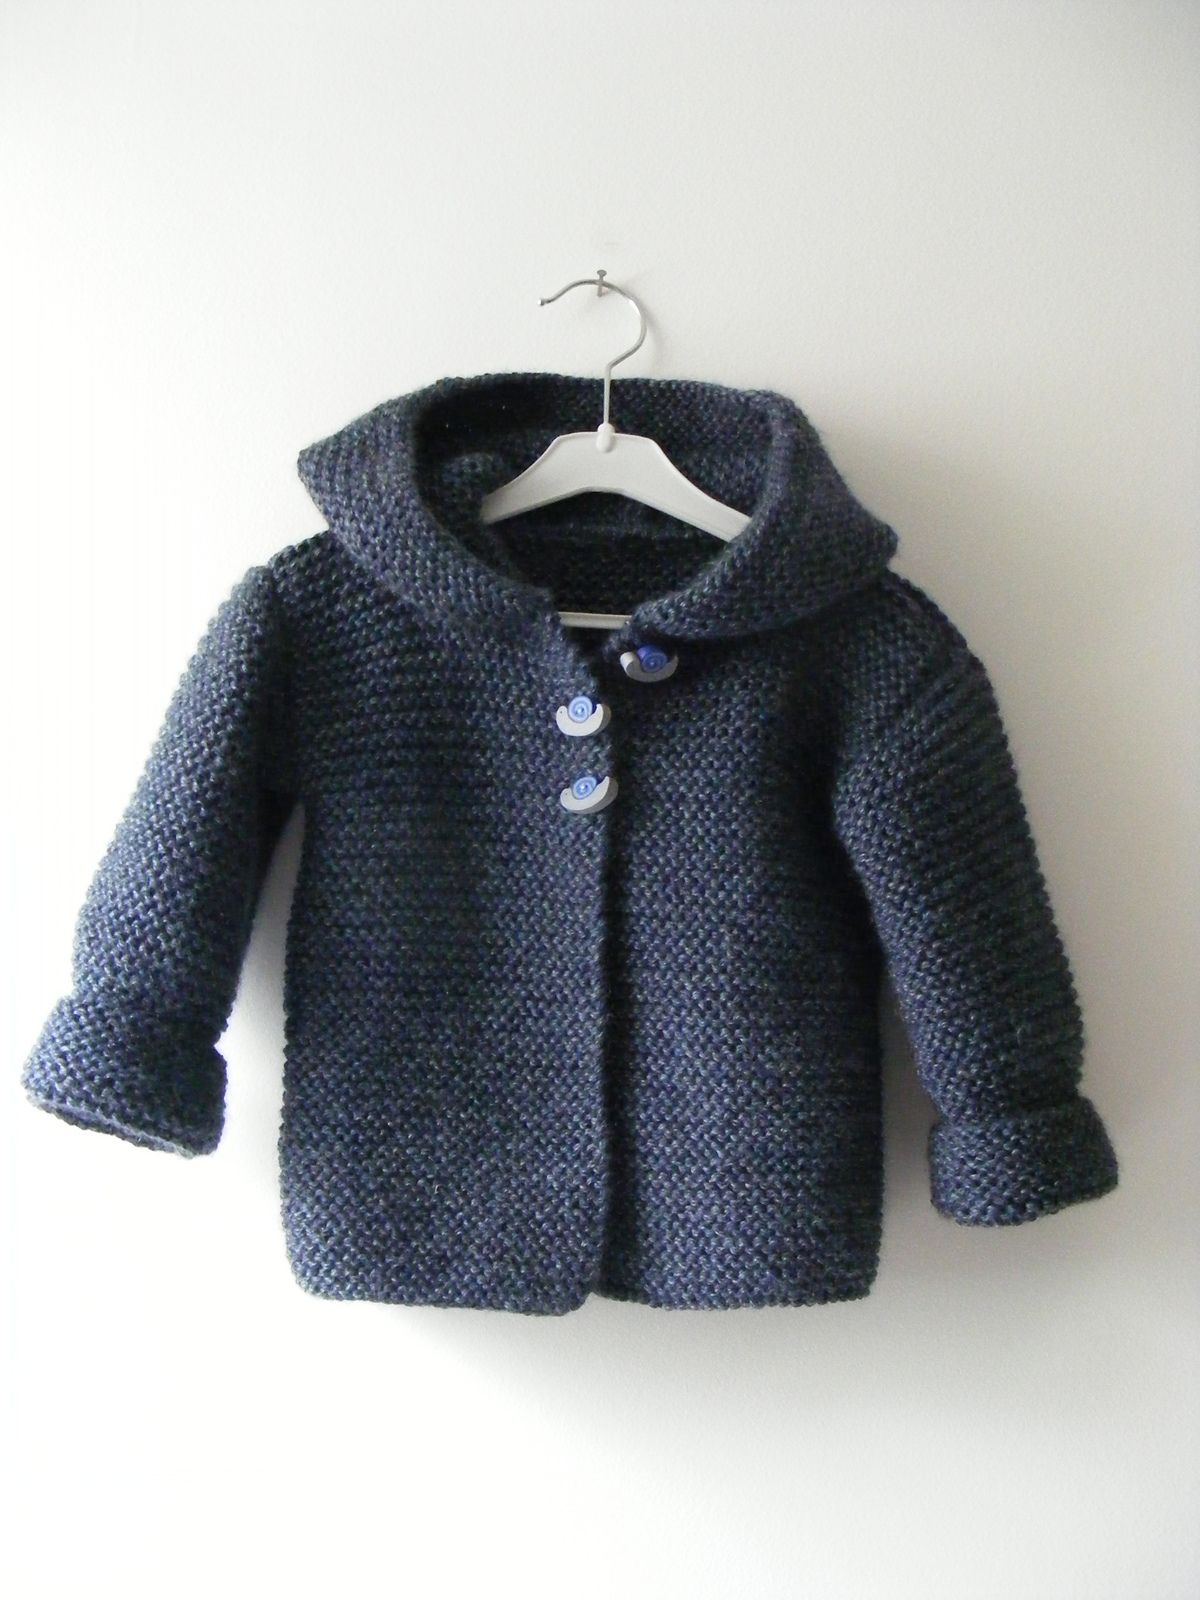 Ravelry: Paletot à capuche / Hooded baby jacket pattern by Mme ...